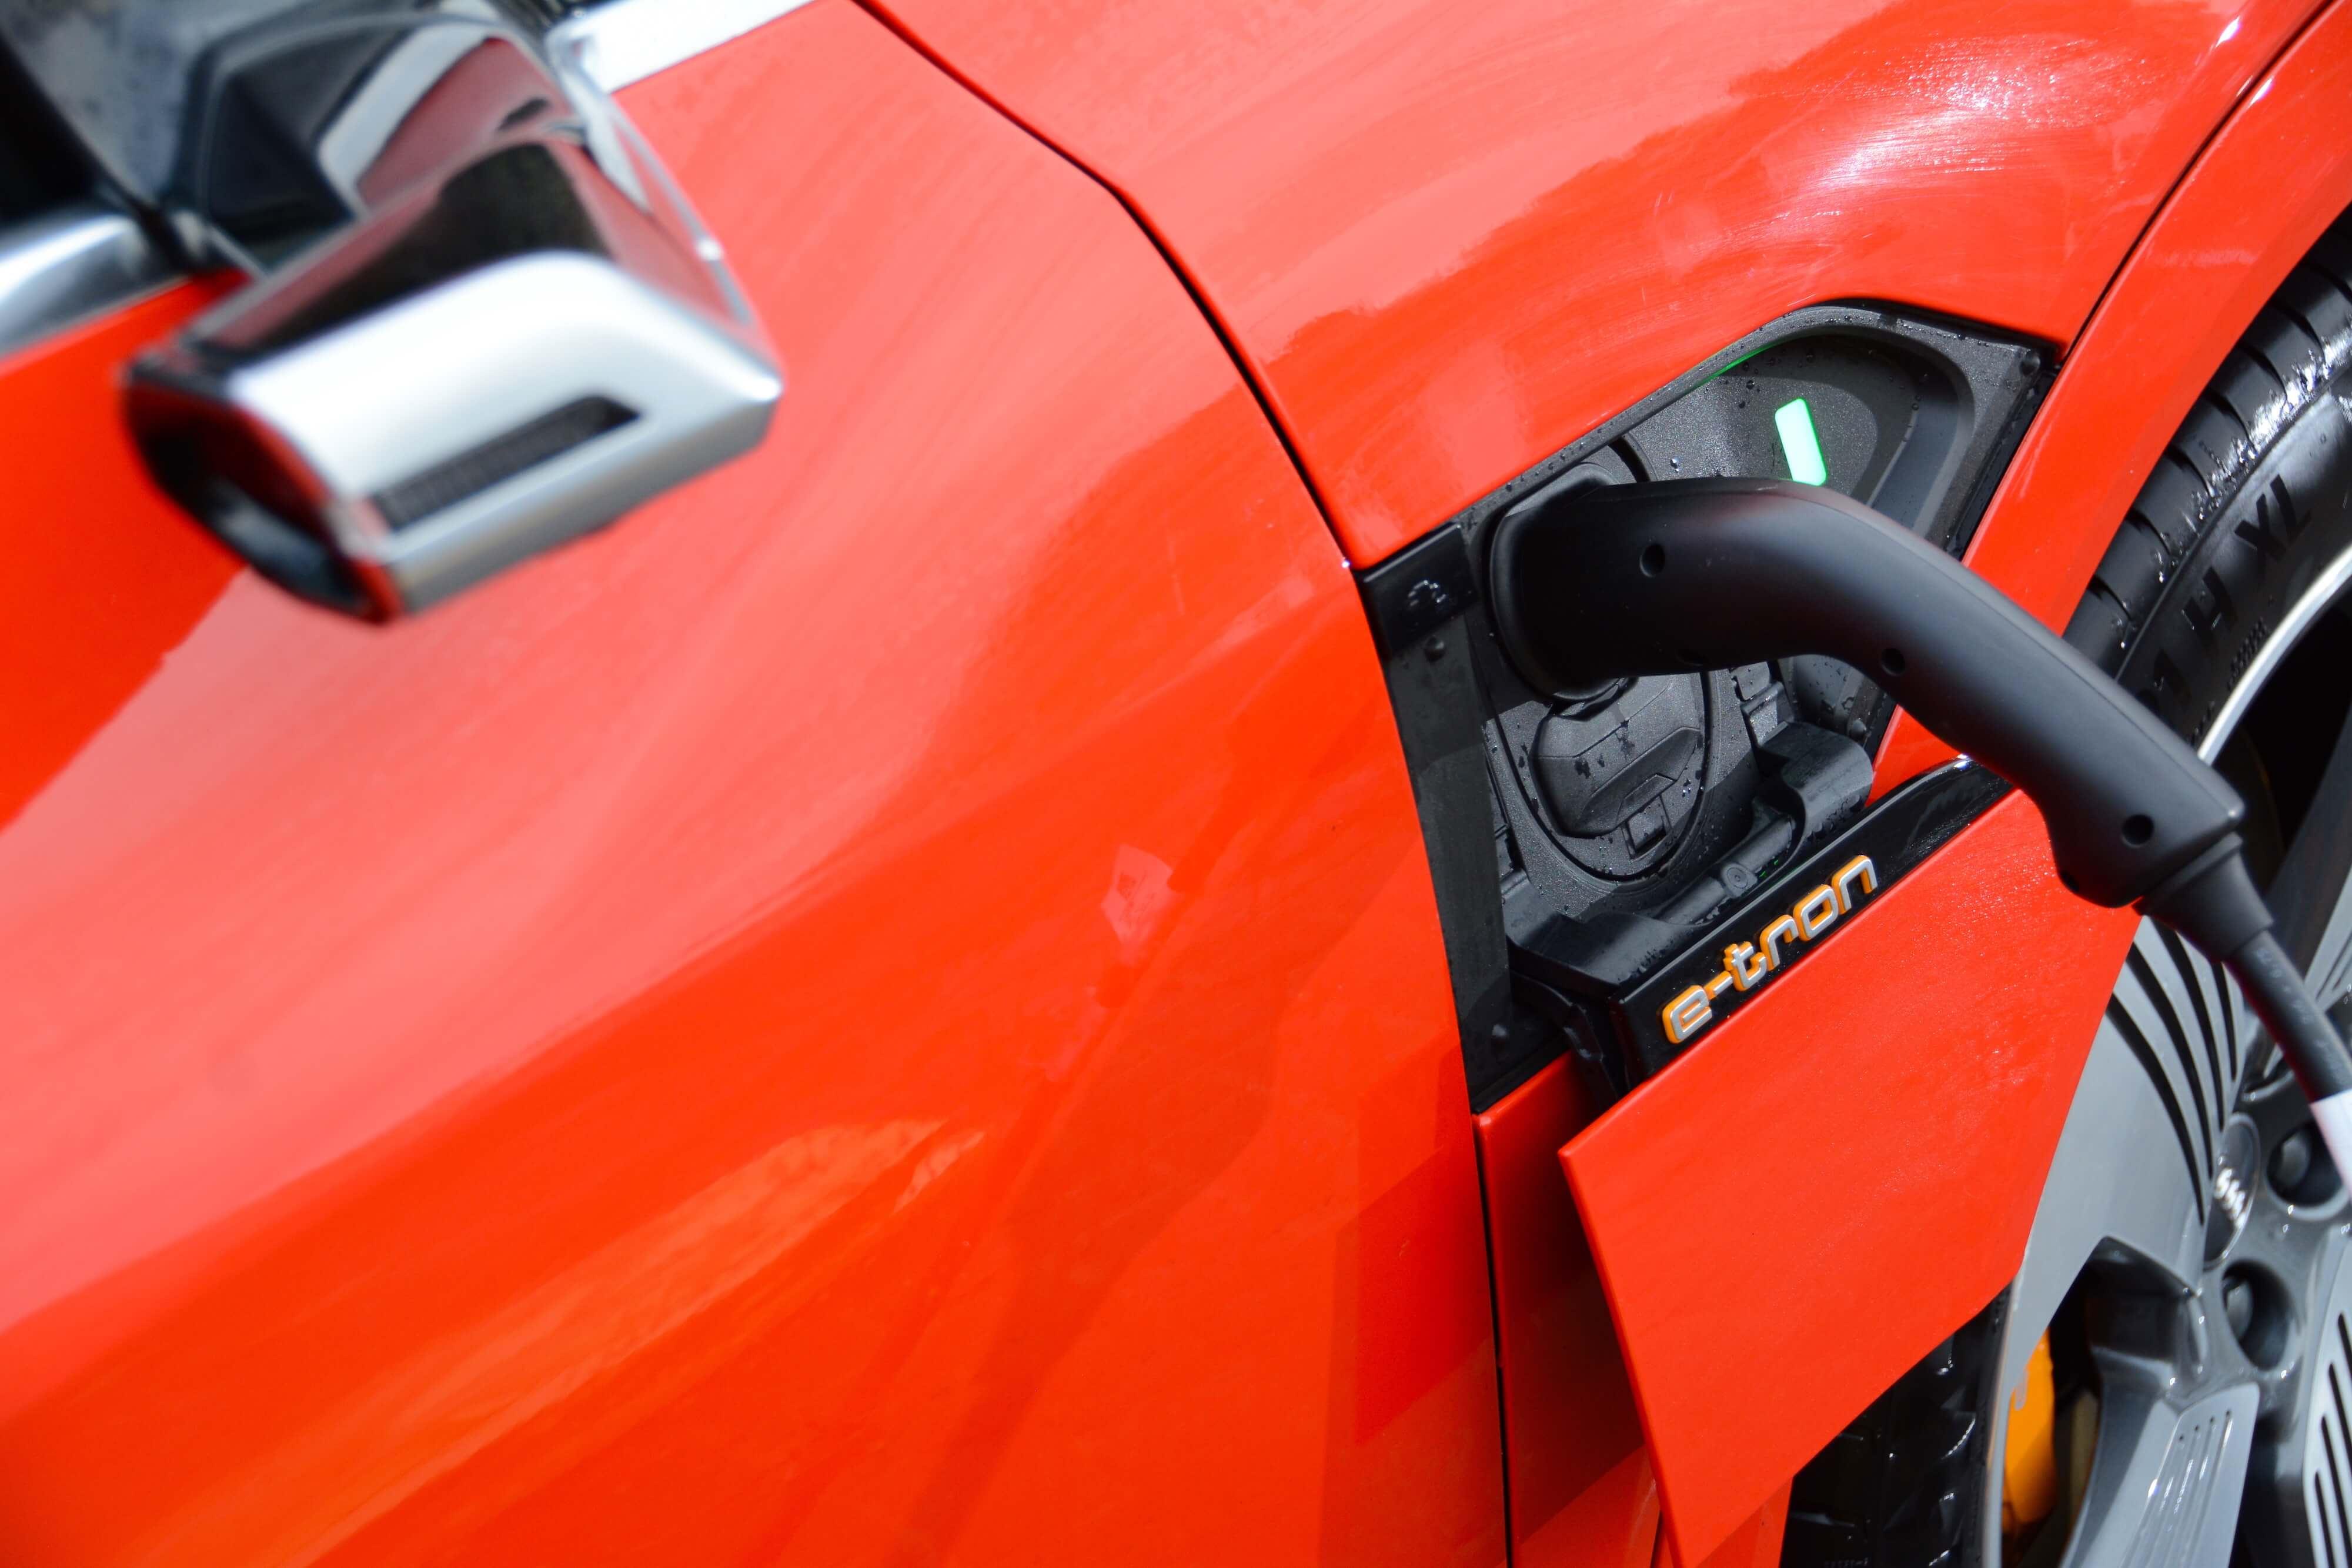 UK records highest-ever electric vehicle sales in 2020, expected to reach 200,000 cars in 2021